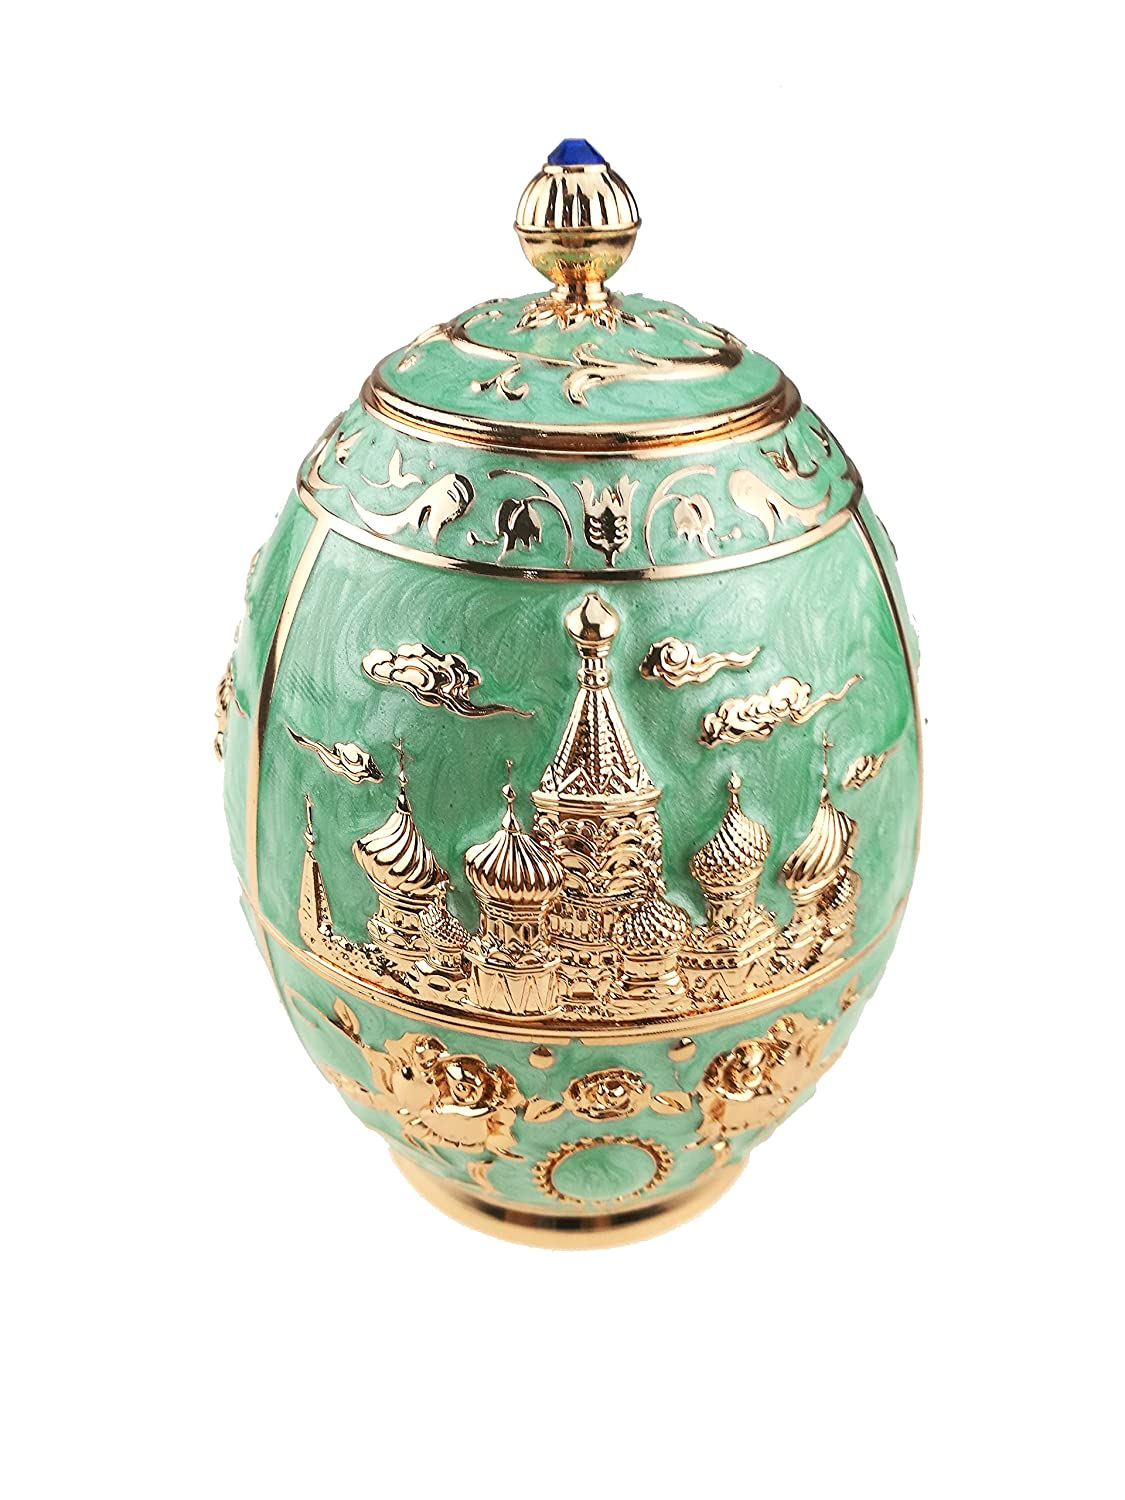 Royal Russian Style Tea Canister Engrave Castle Pattern Tin Metal Tea Container for Loose Tea Tea Jar Art Craft Ornament Home Decor (White, Castle and Horse) Winterworm